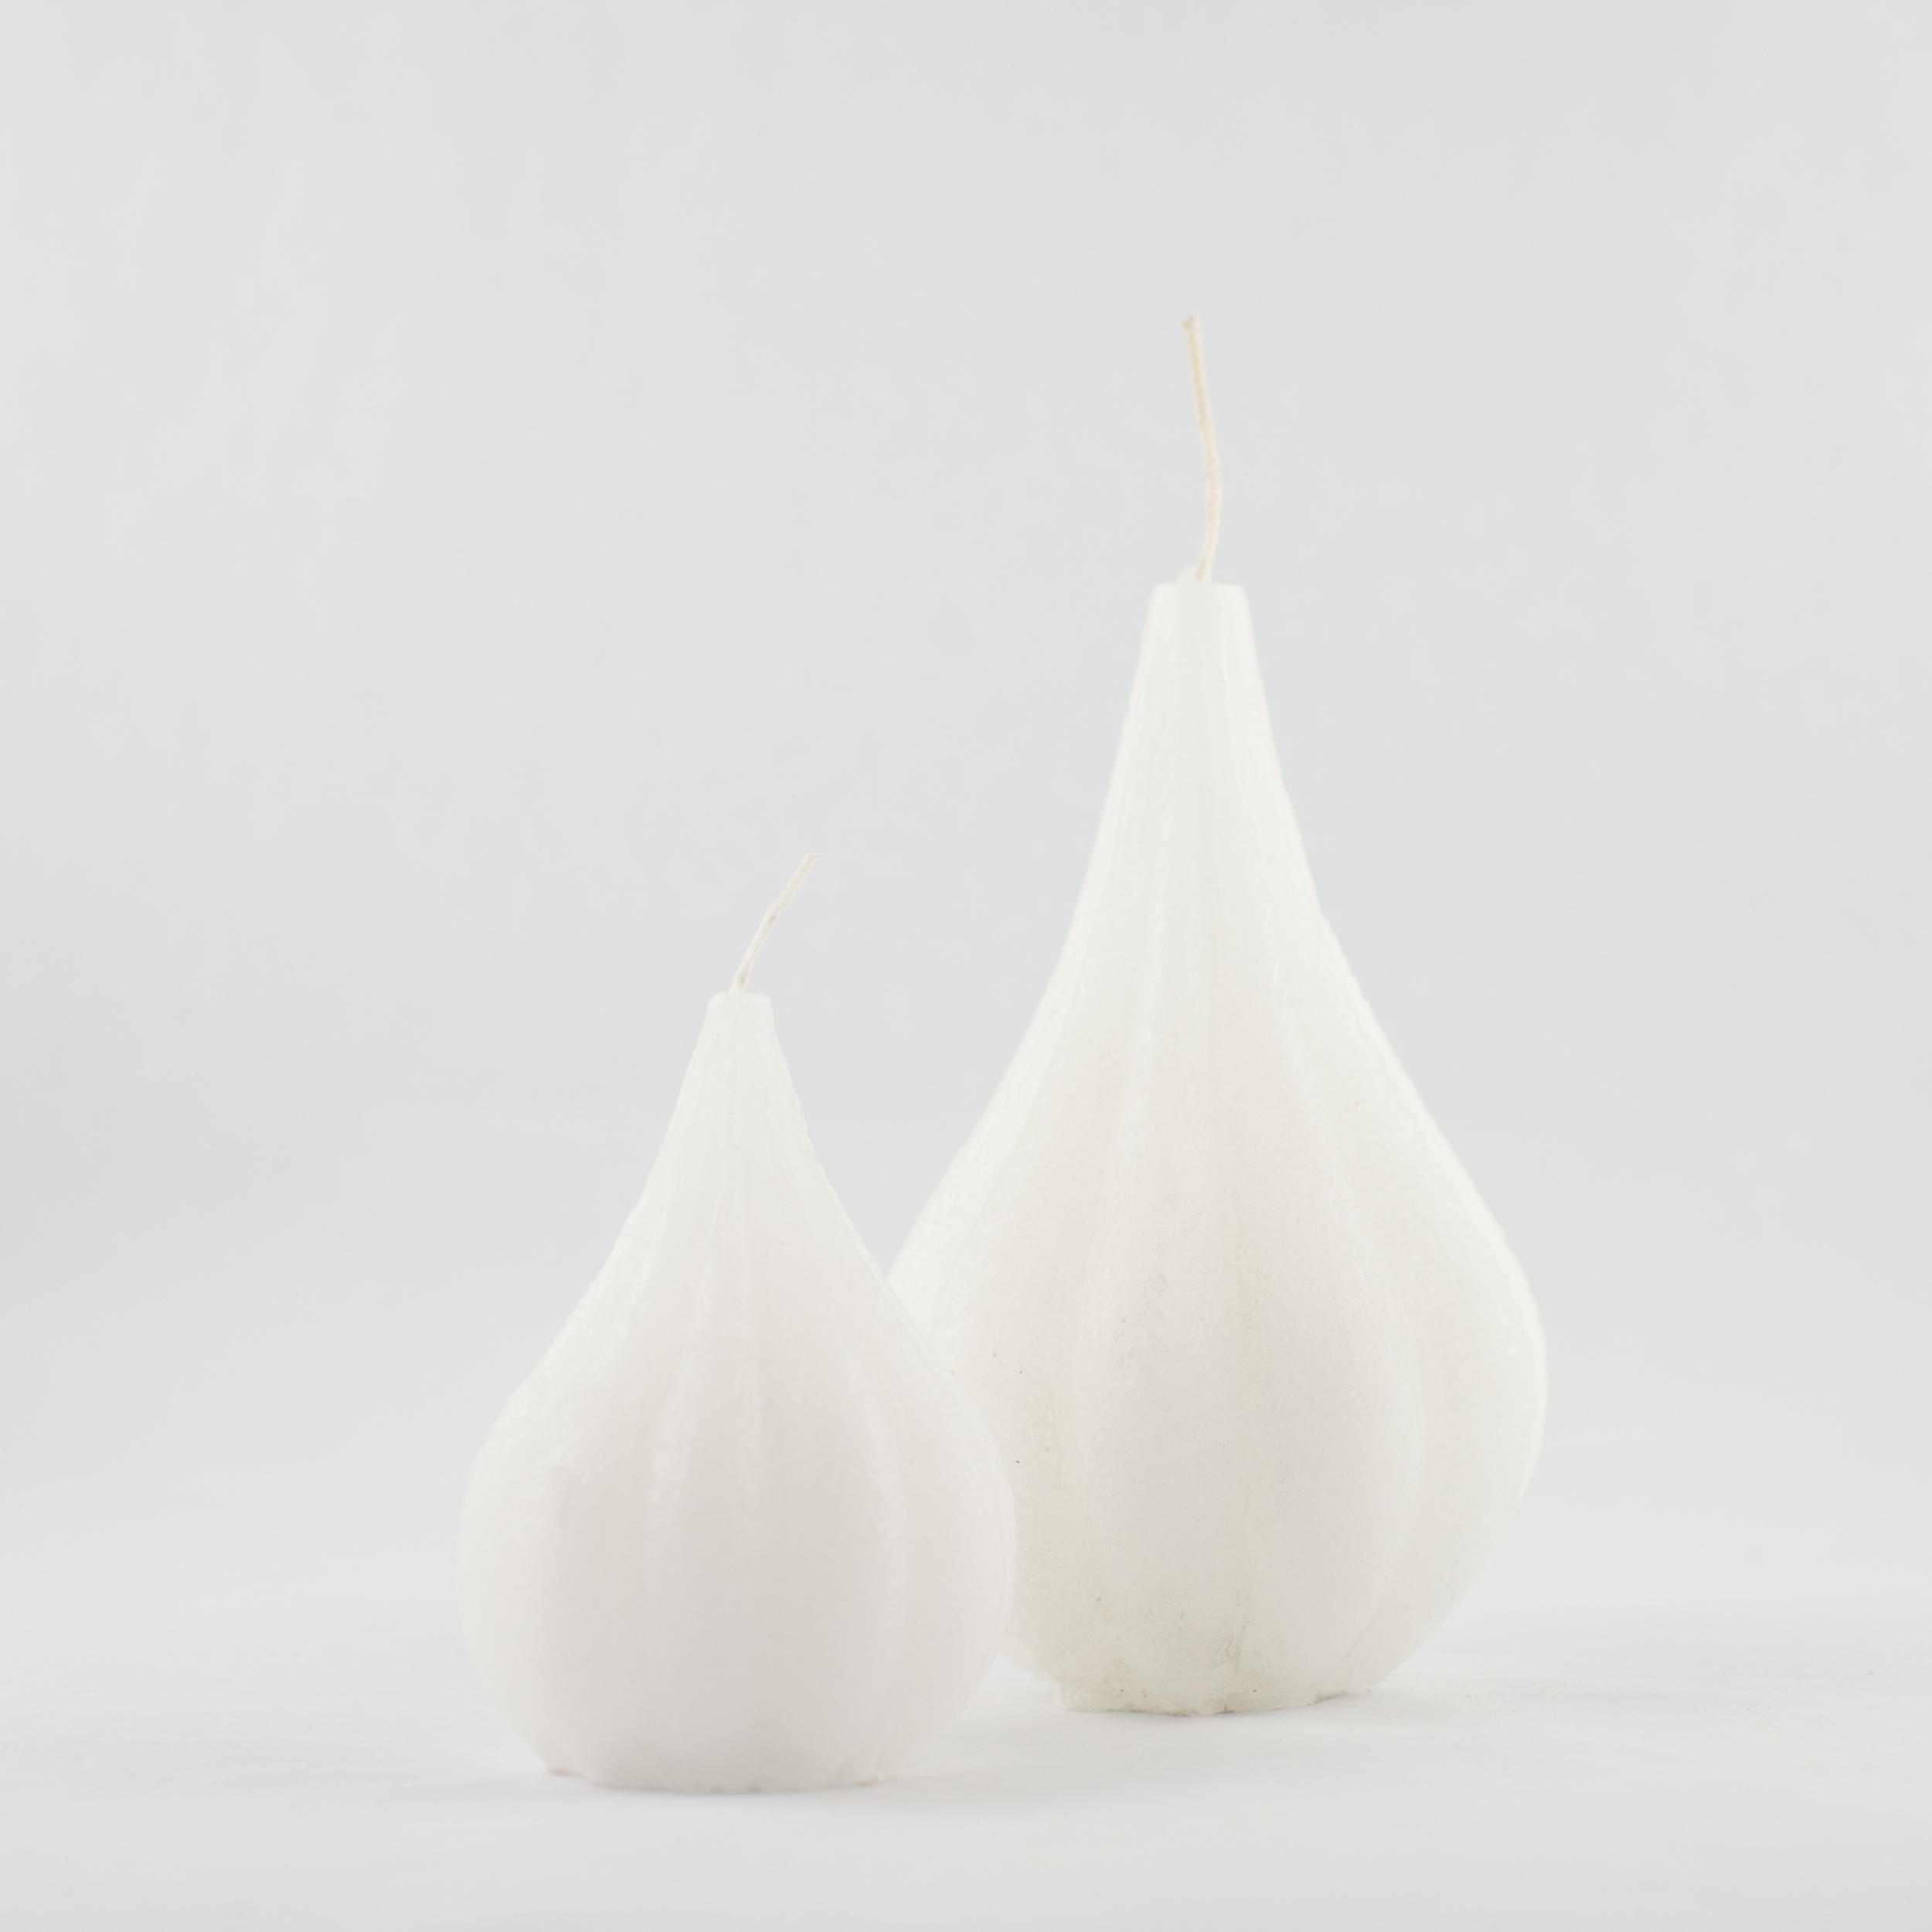 White Pear Candles  £4.95 - £7.00